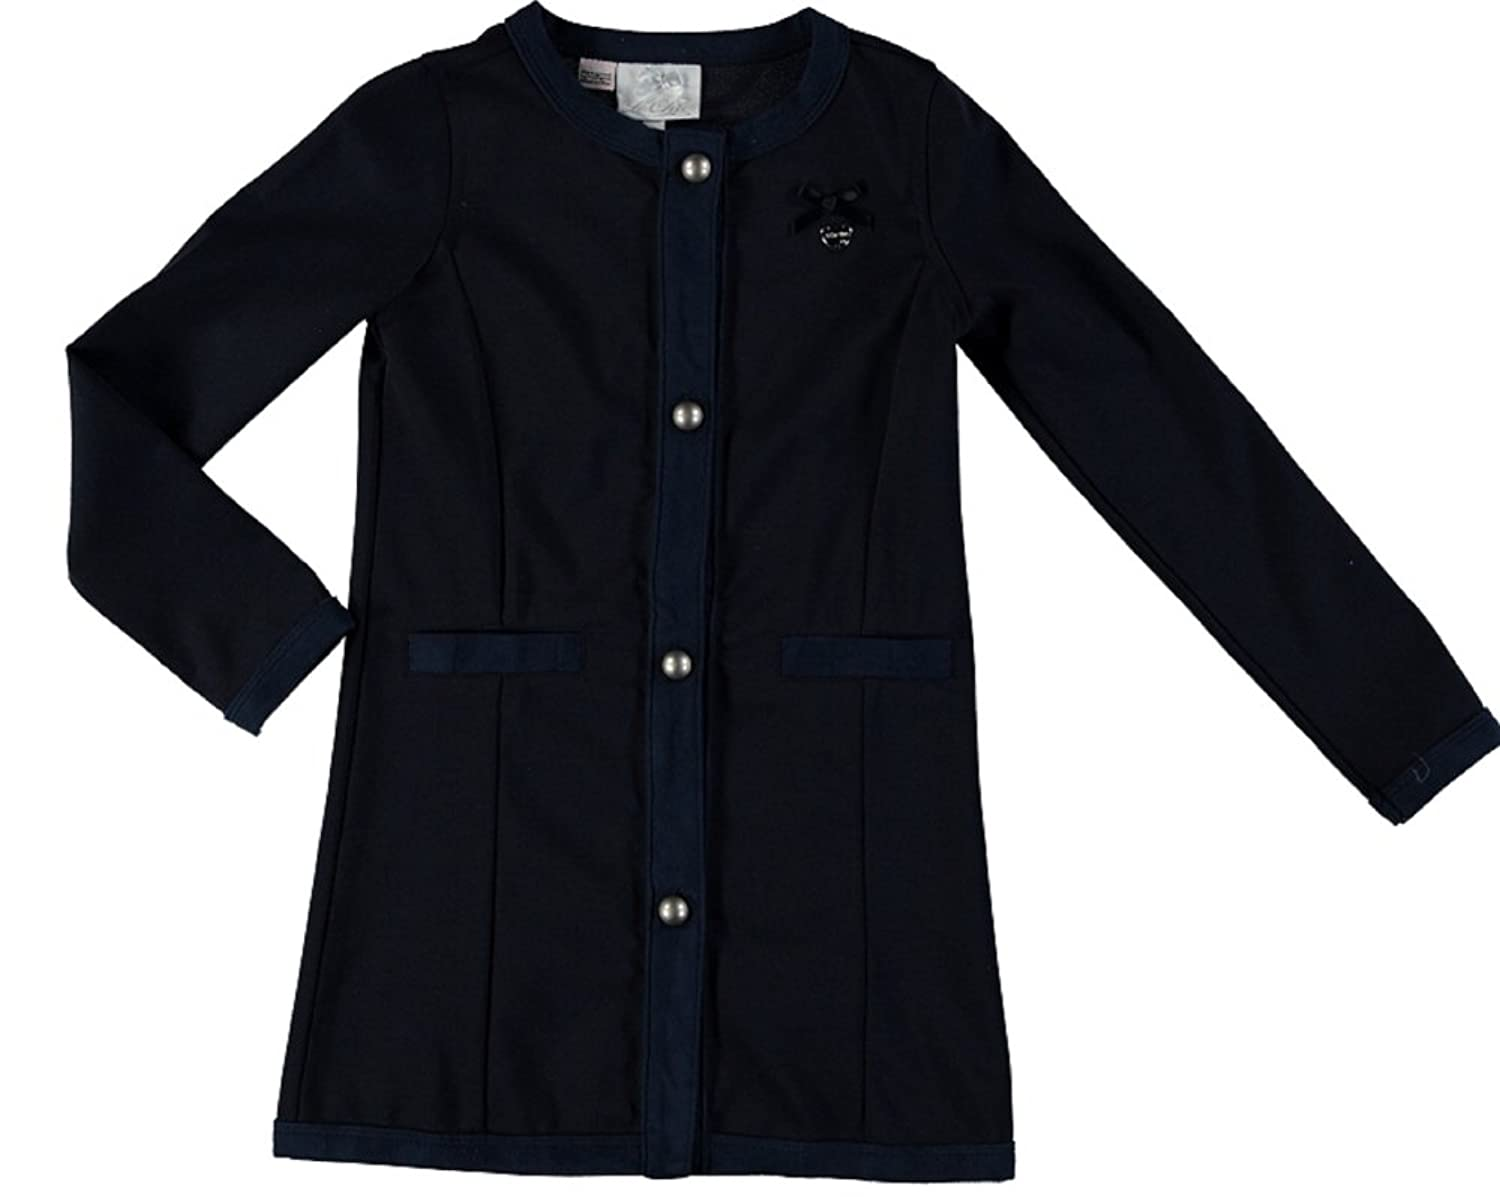 Le Chic Jacke/ Mantel in blue navy